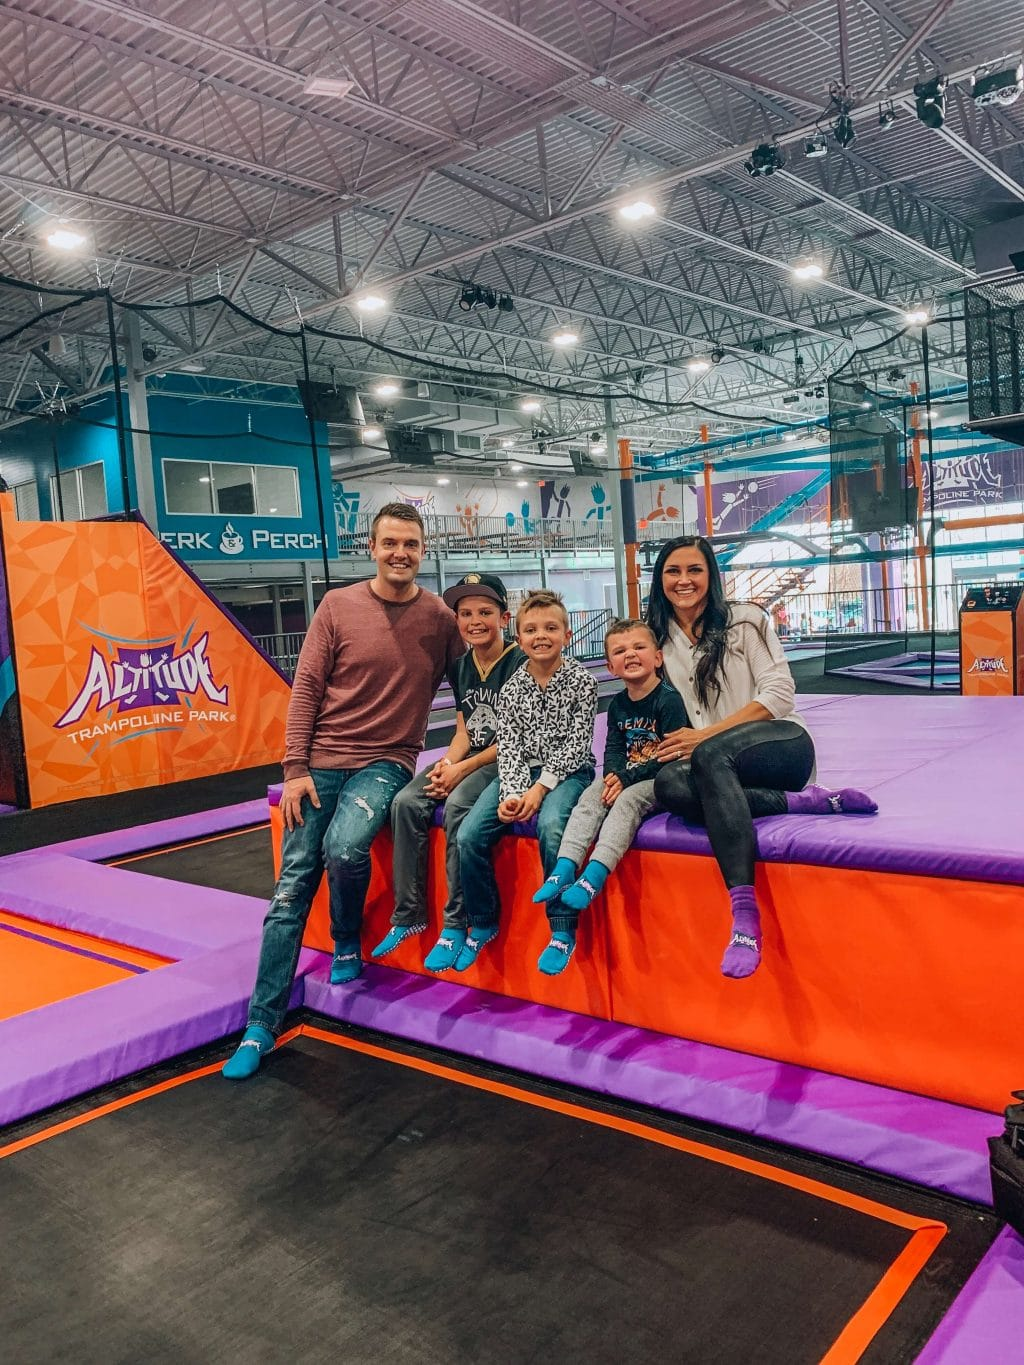 Family Fun - Altitude Trampoline Park